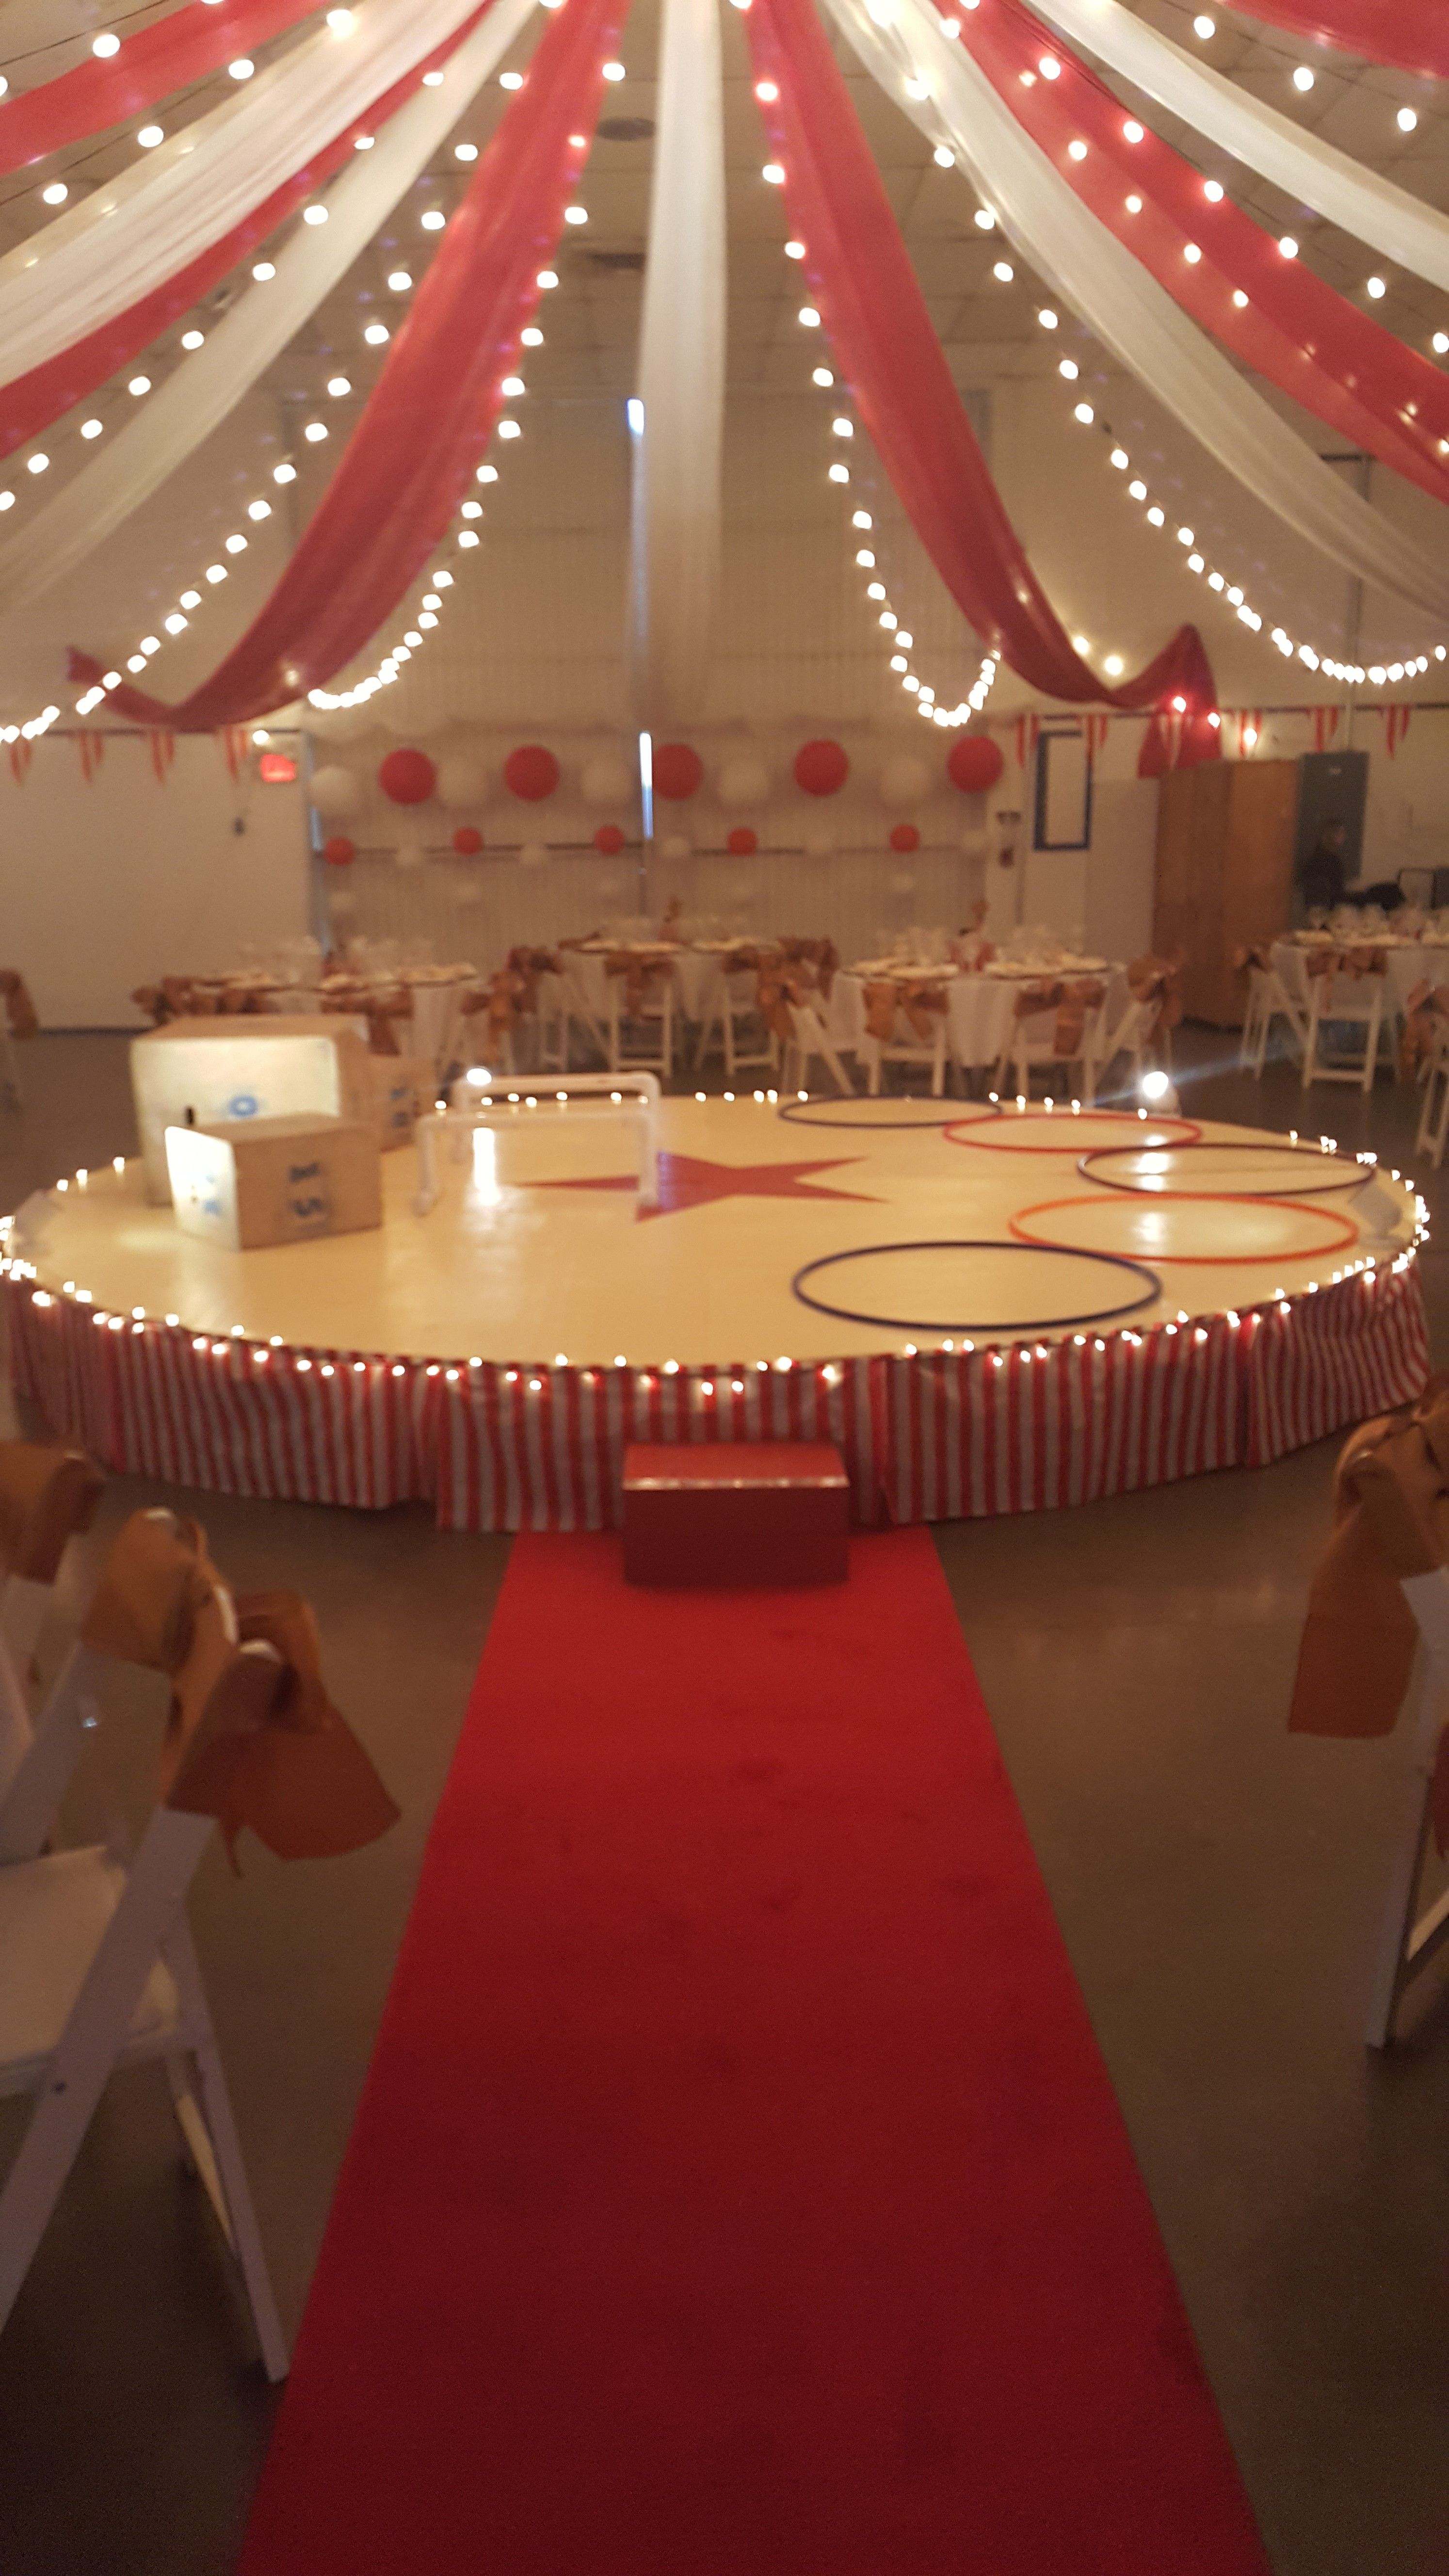 Circus tent party space | SWEET 16 IDEAS in 2019 | Circus ...